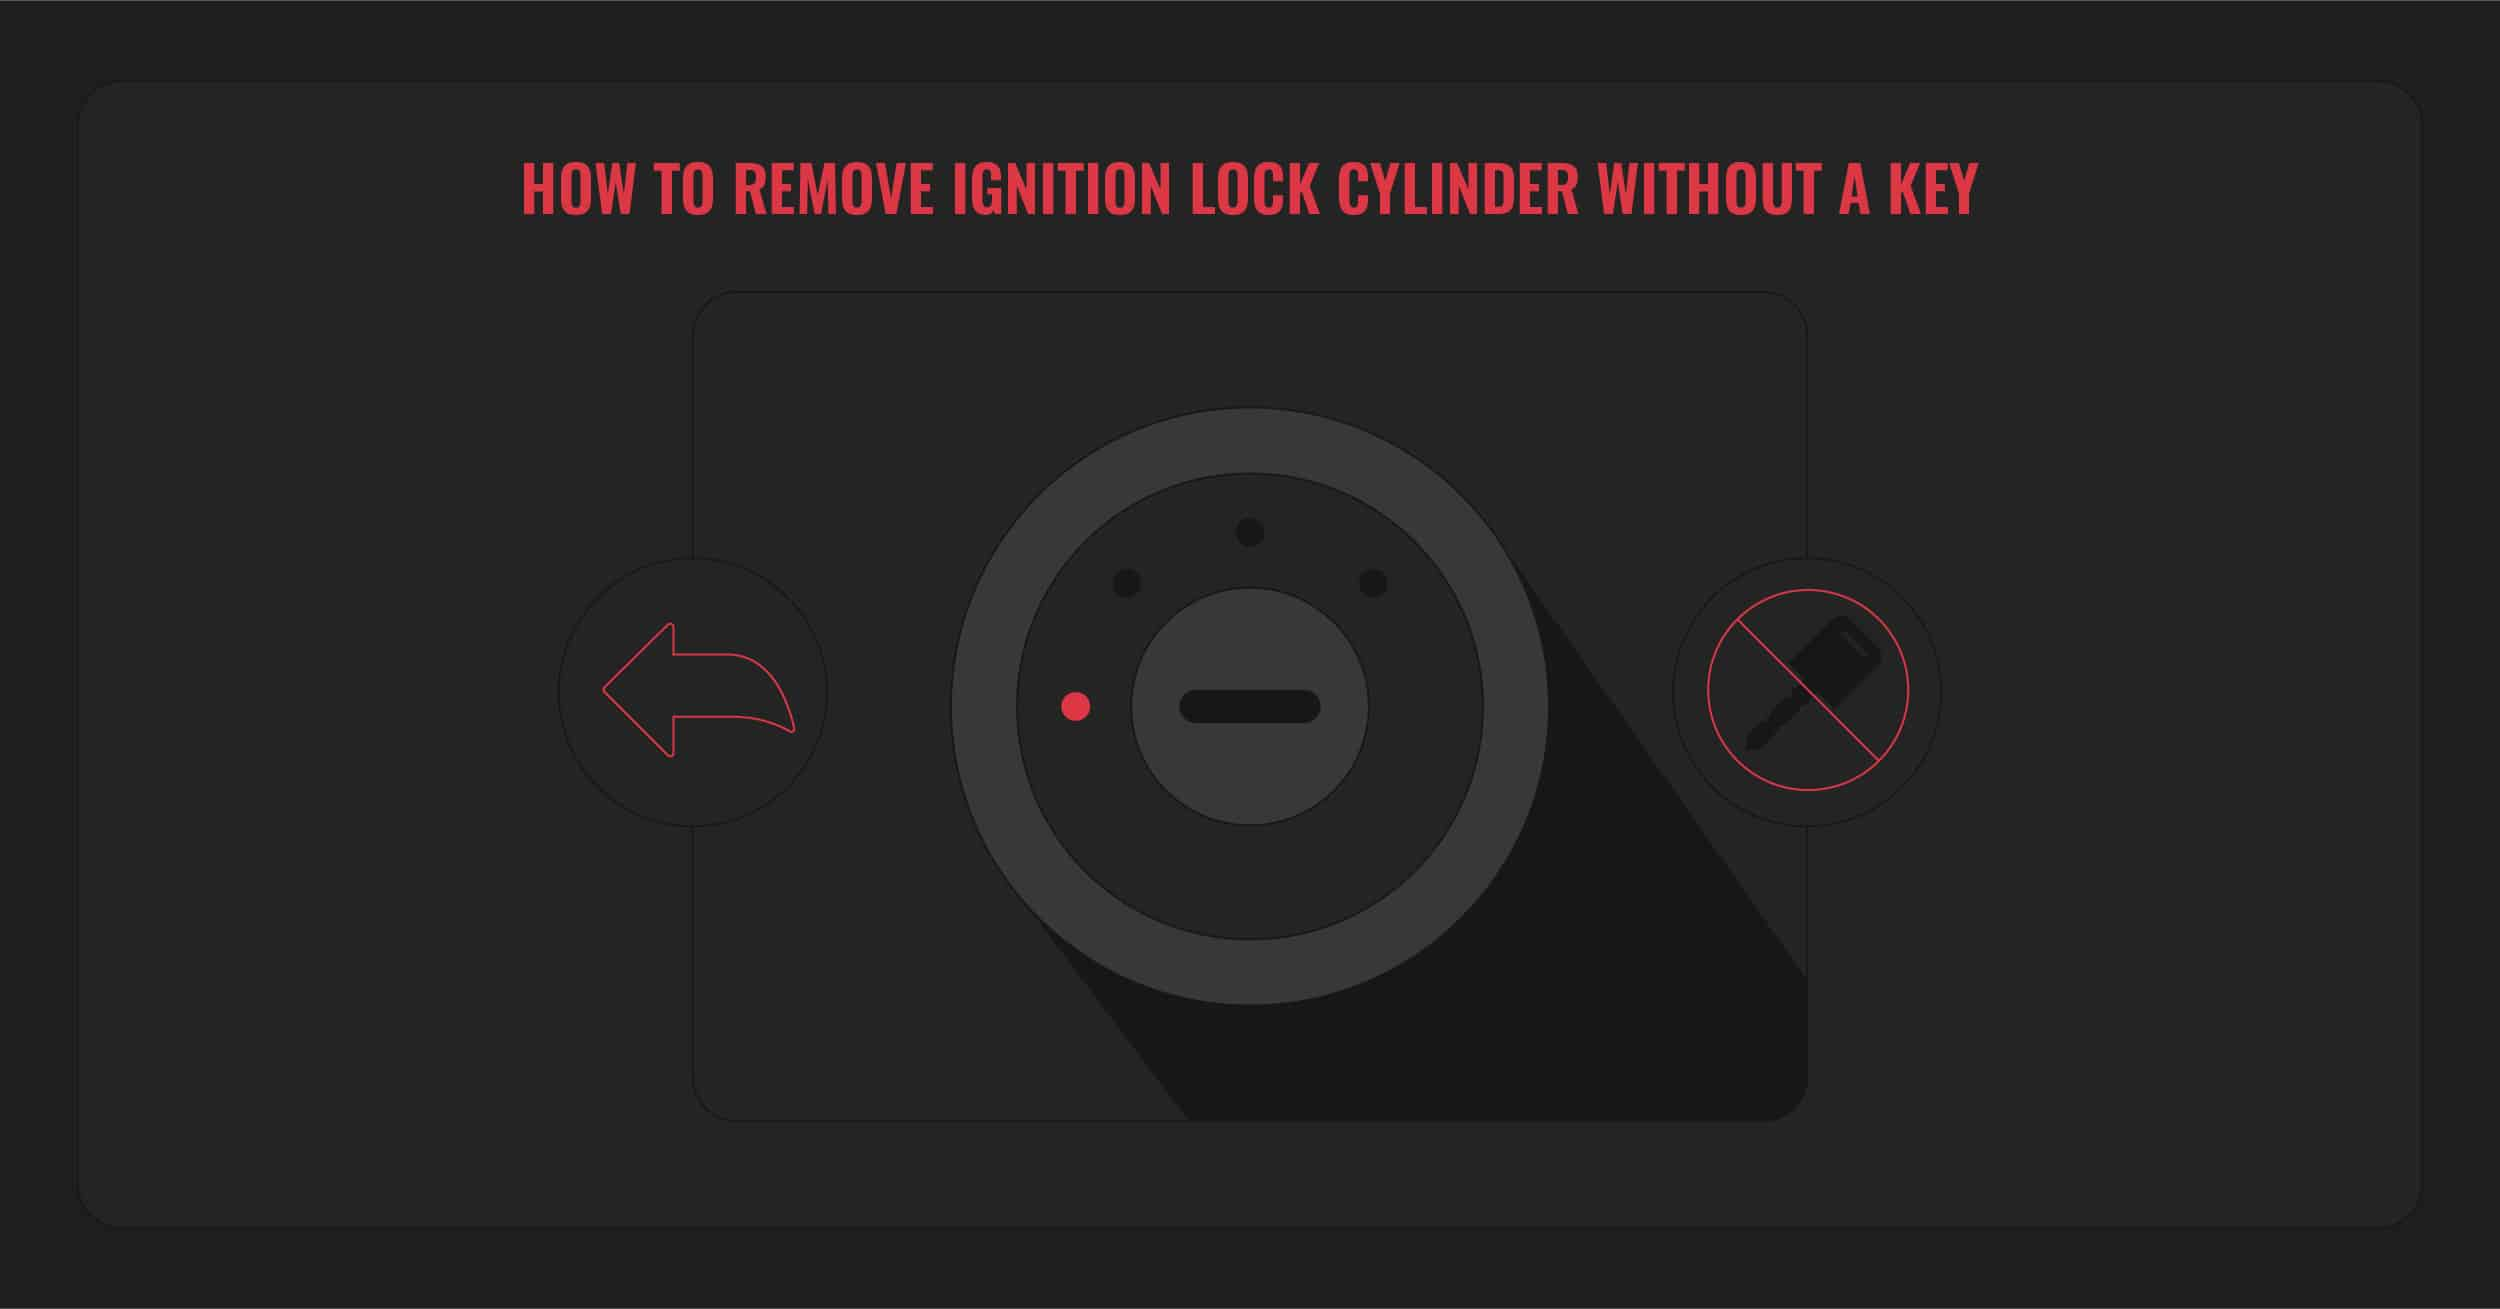 How to remove ignition switch without key